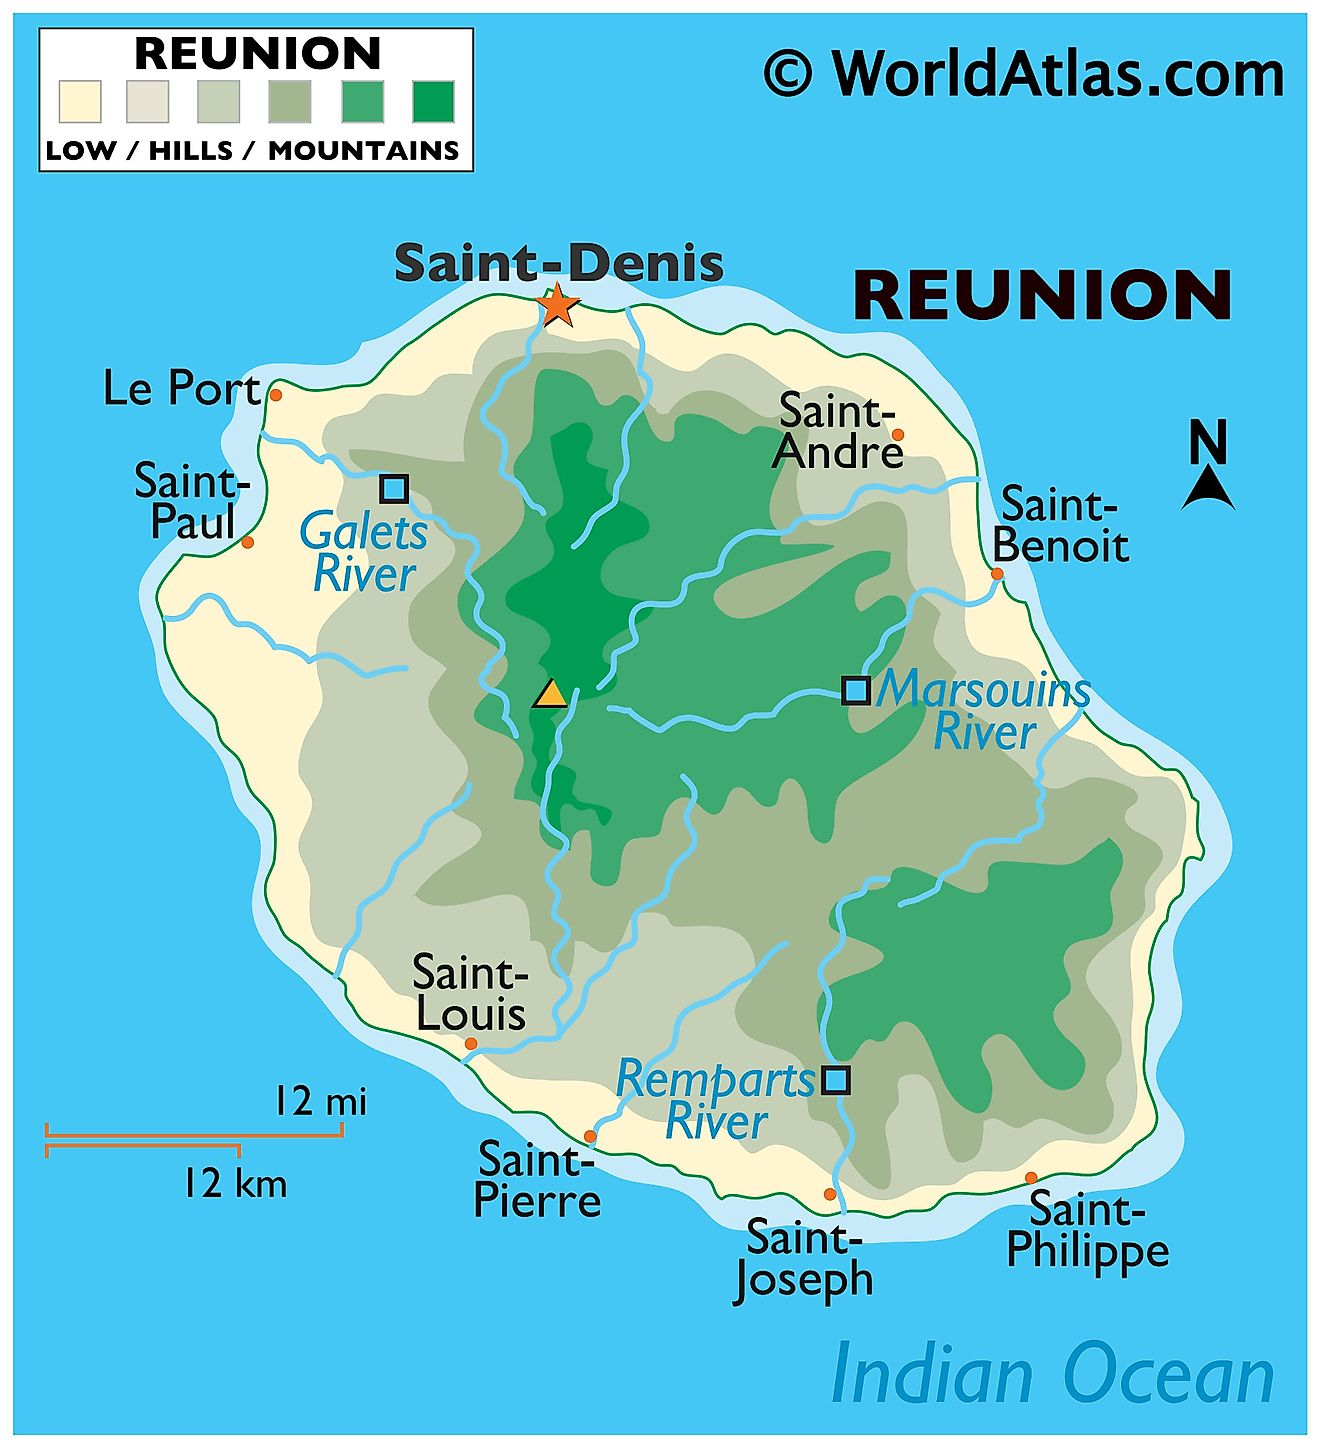 Physical Map of Reunion. It shows the physical features of Reunion Island, its volcanoes and major rivers.